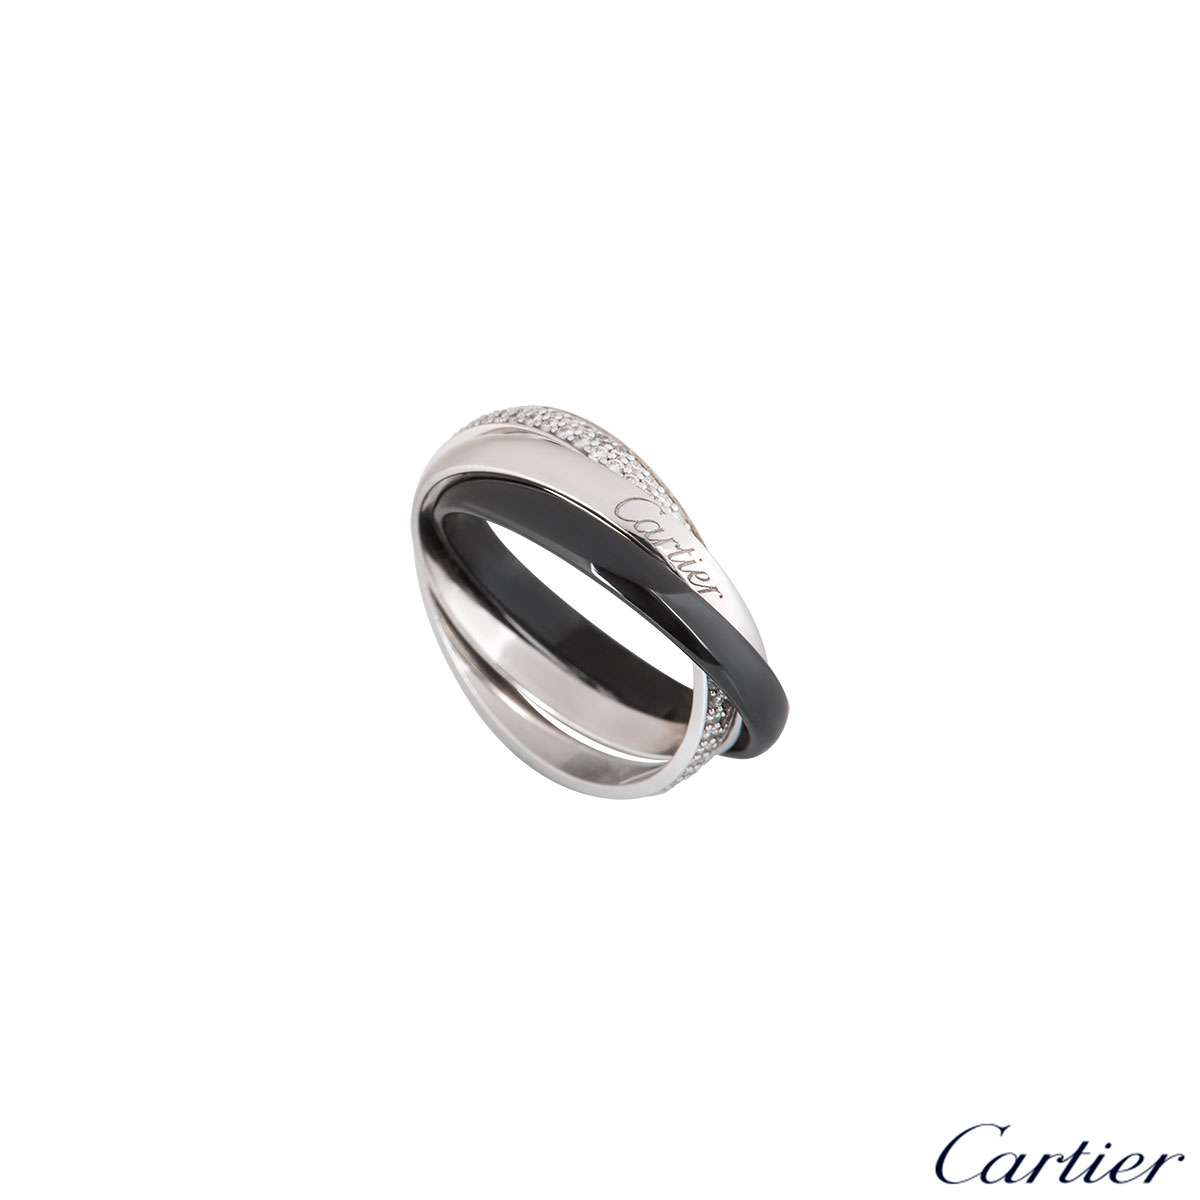 Cartier Trinity de Cartier Ring 18k White Gold and Ceramic B4095500